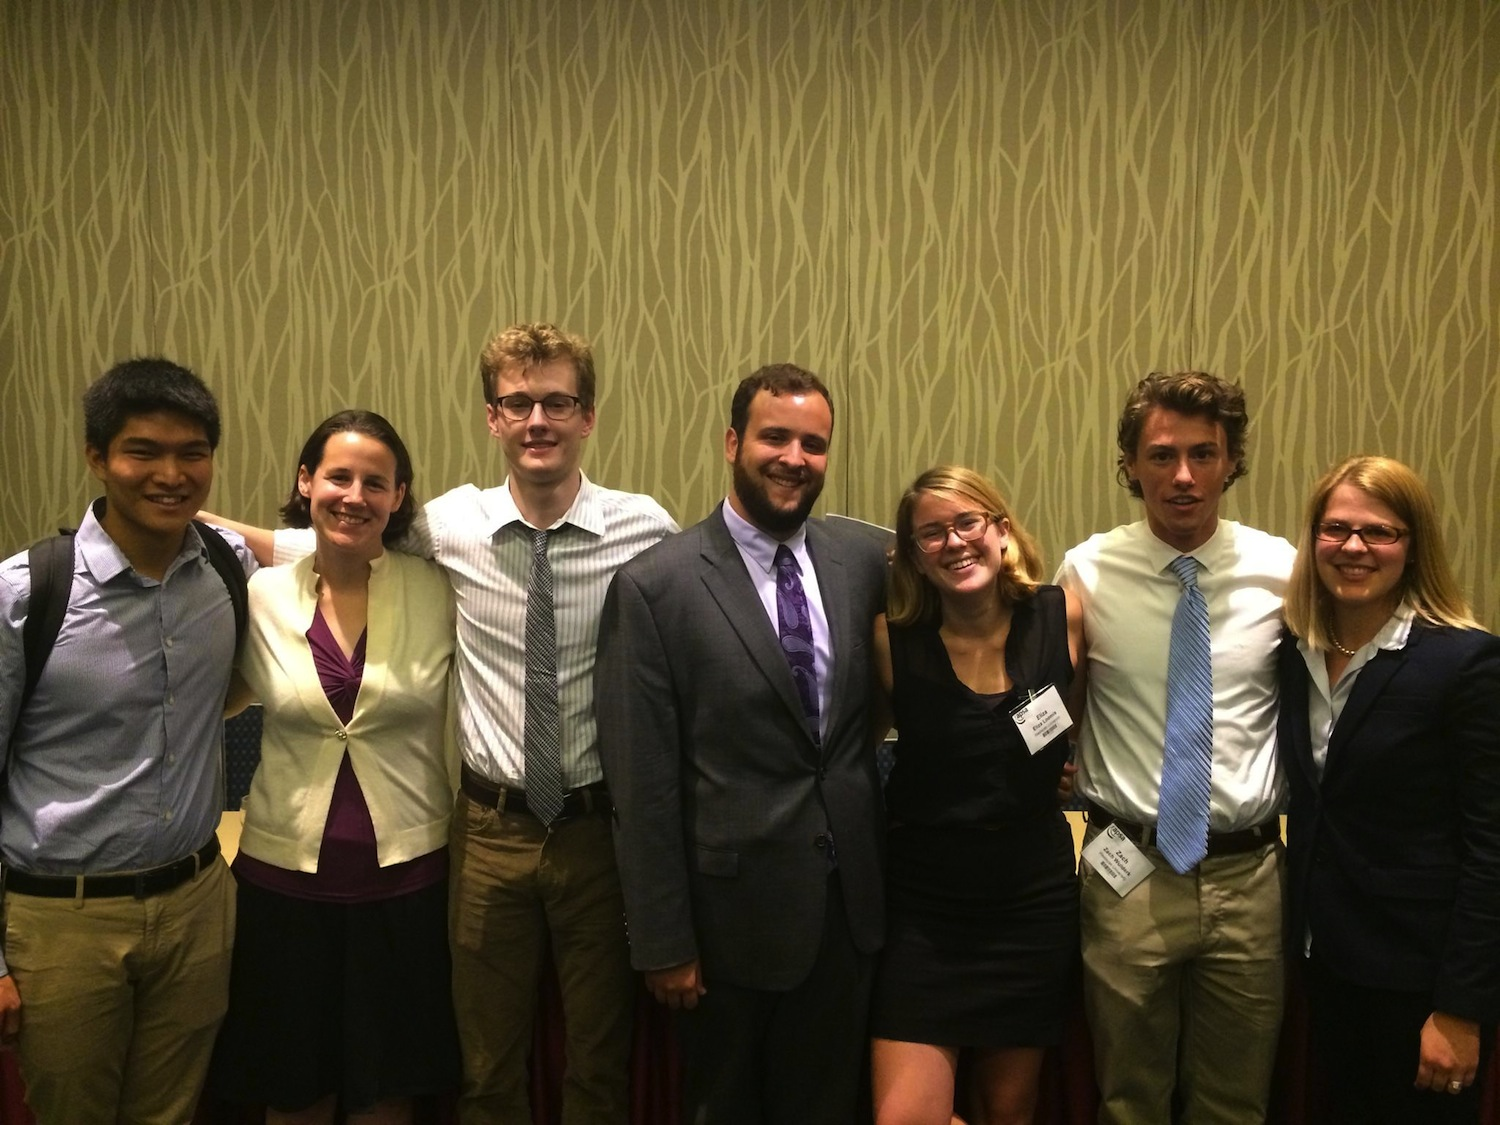 Leonid Liu '14, Laura Baum, P. Marshal Lawler '16, Michael Linden '15, Eliza Loomis '15, Zachary Wulderk '15, Erika Franklin Fowler at the American Political Science Association meeting.